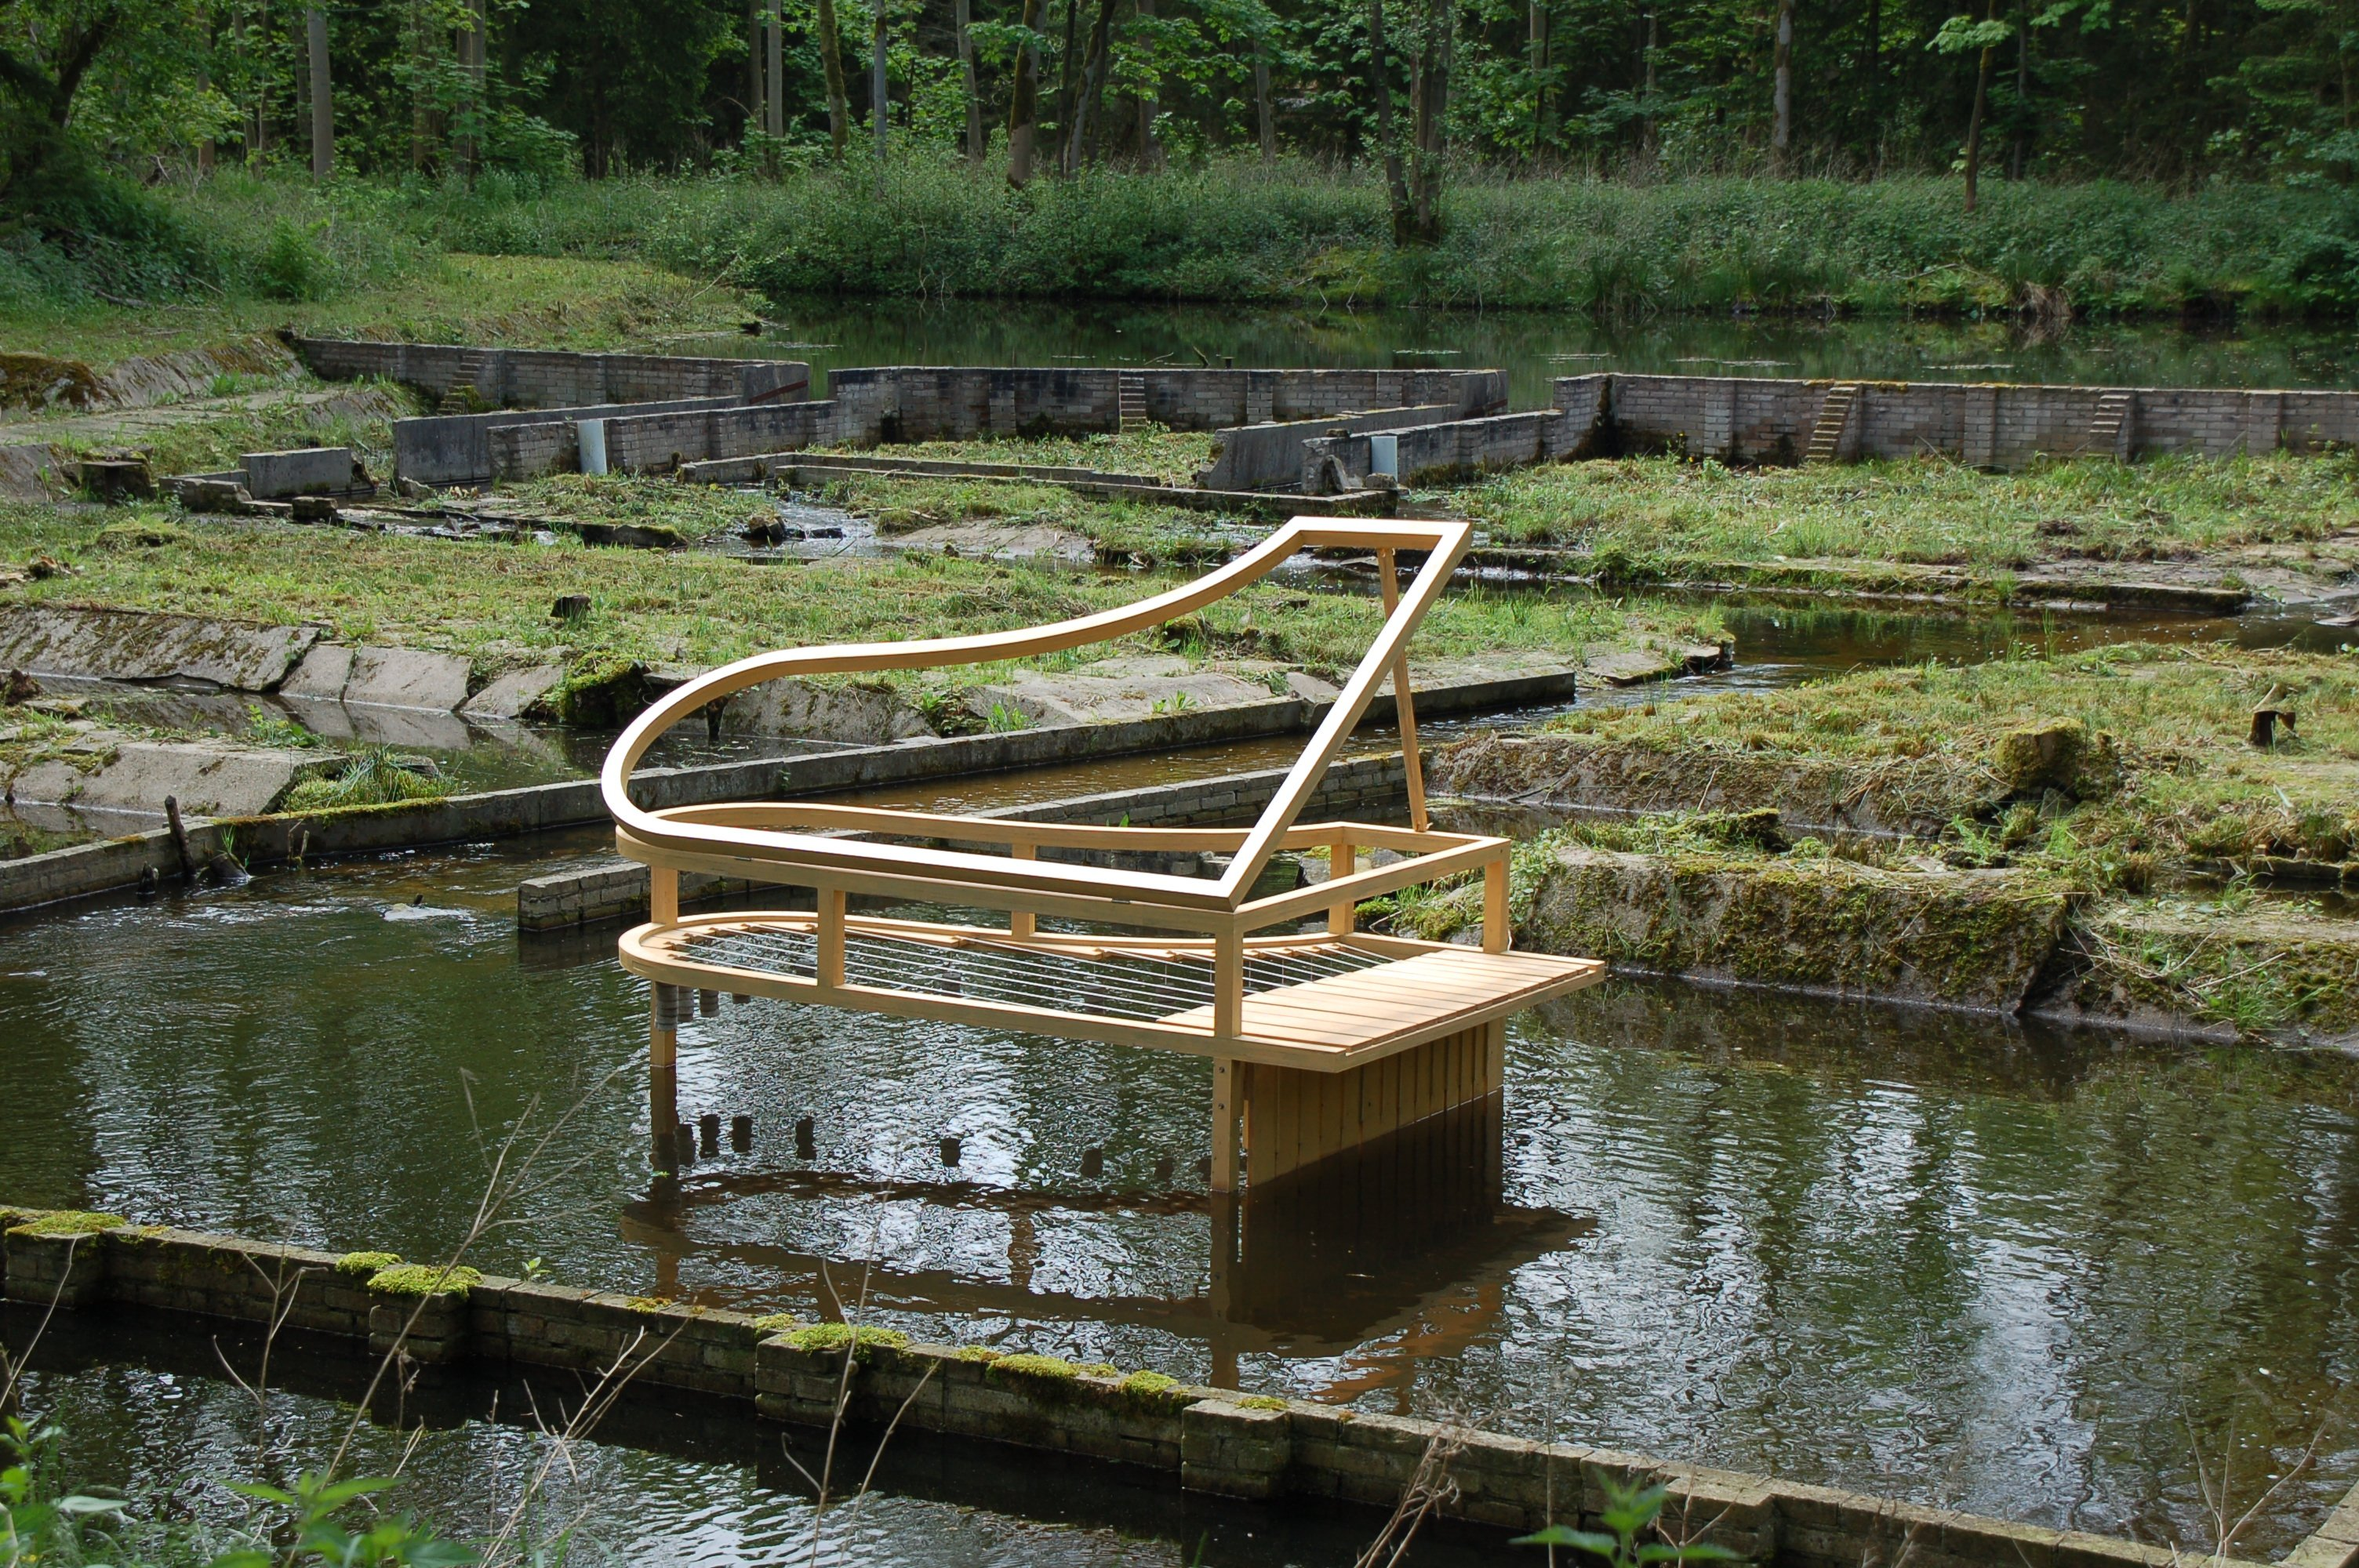 Joseph Tasnadi, Waterpiano